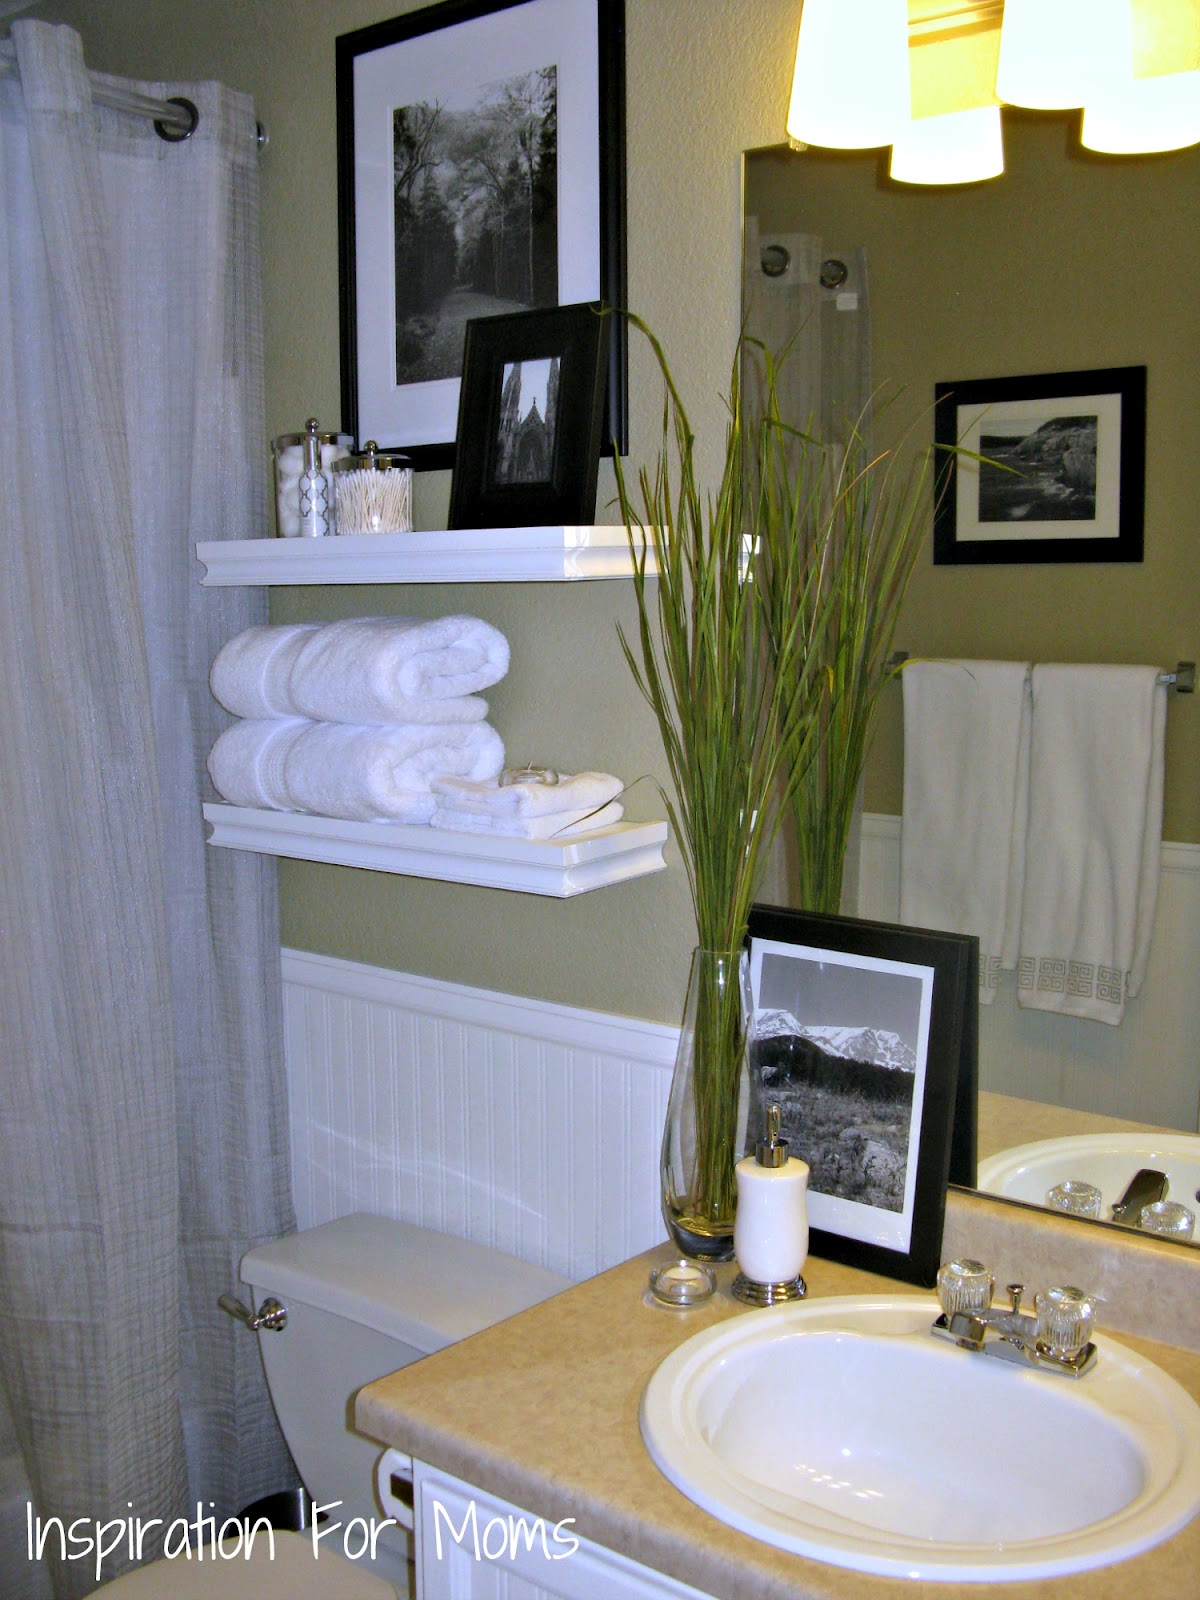 I finished it friday guest bathroom remodel inspiration for Small restroom remodel ideas